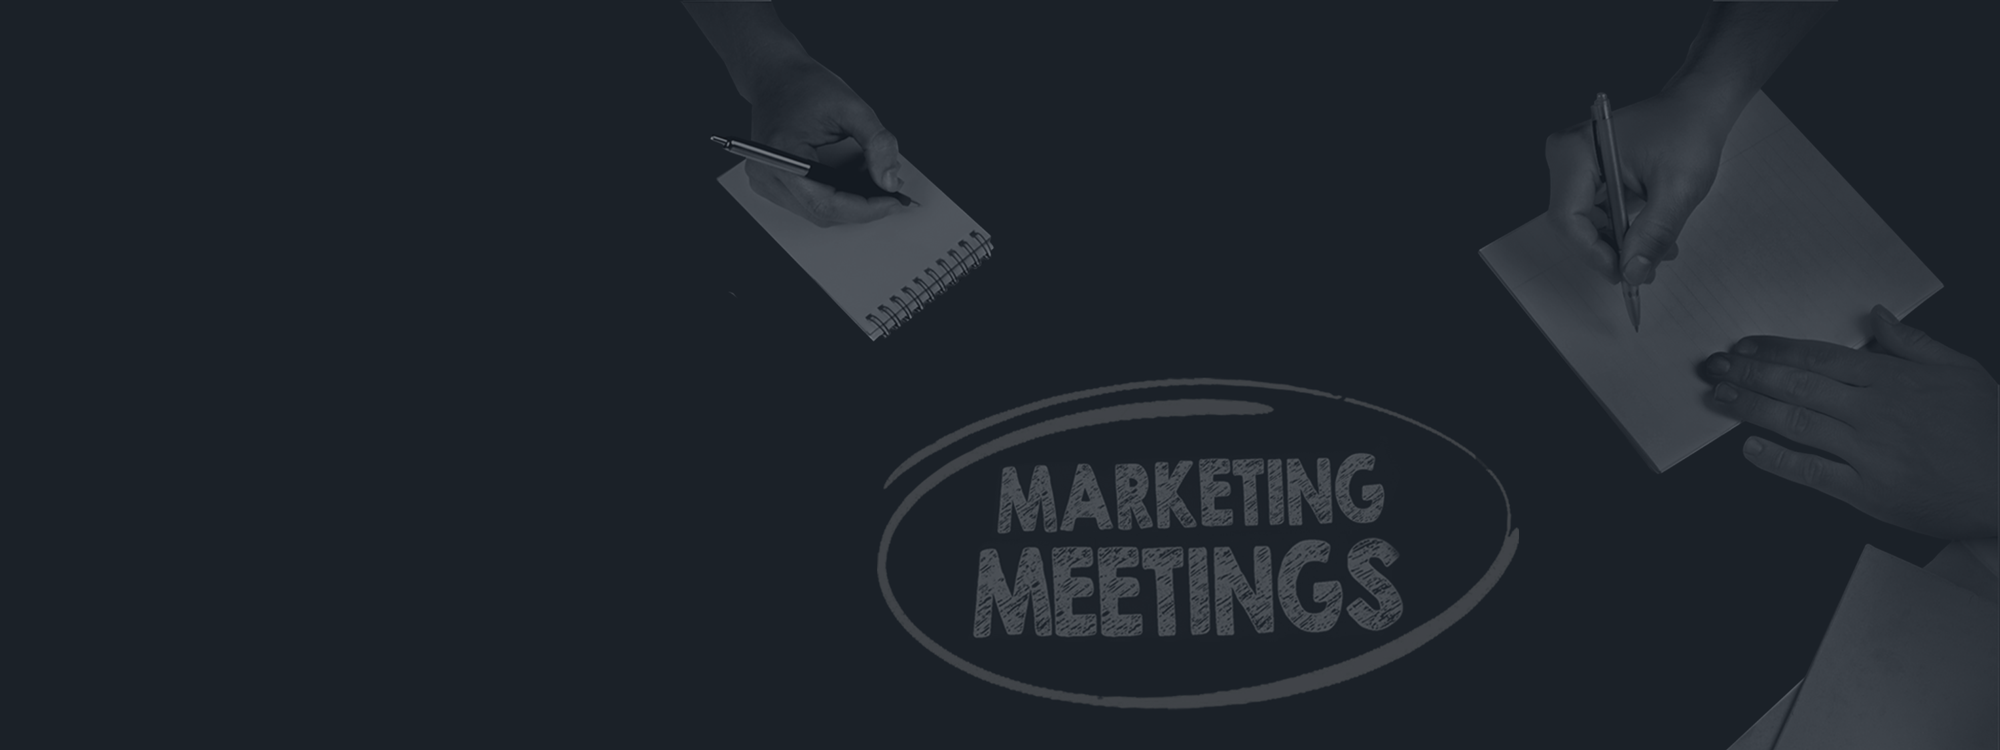 Tech firms sharing how they run meetings in marketing departments